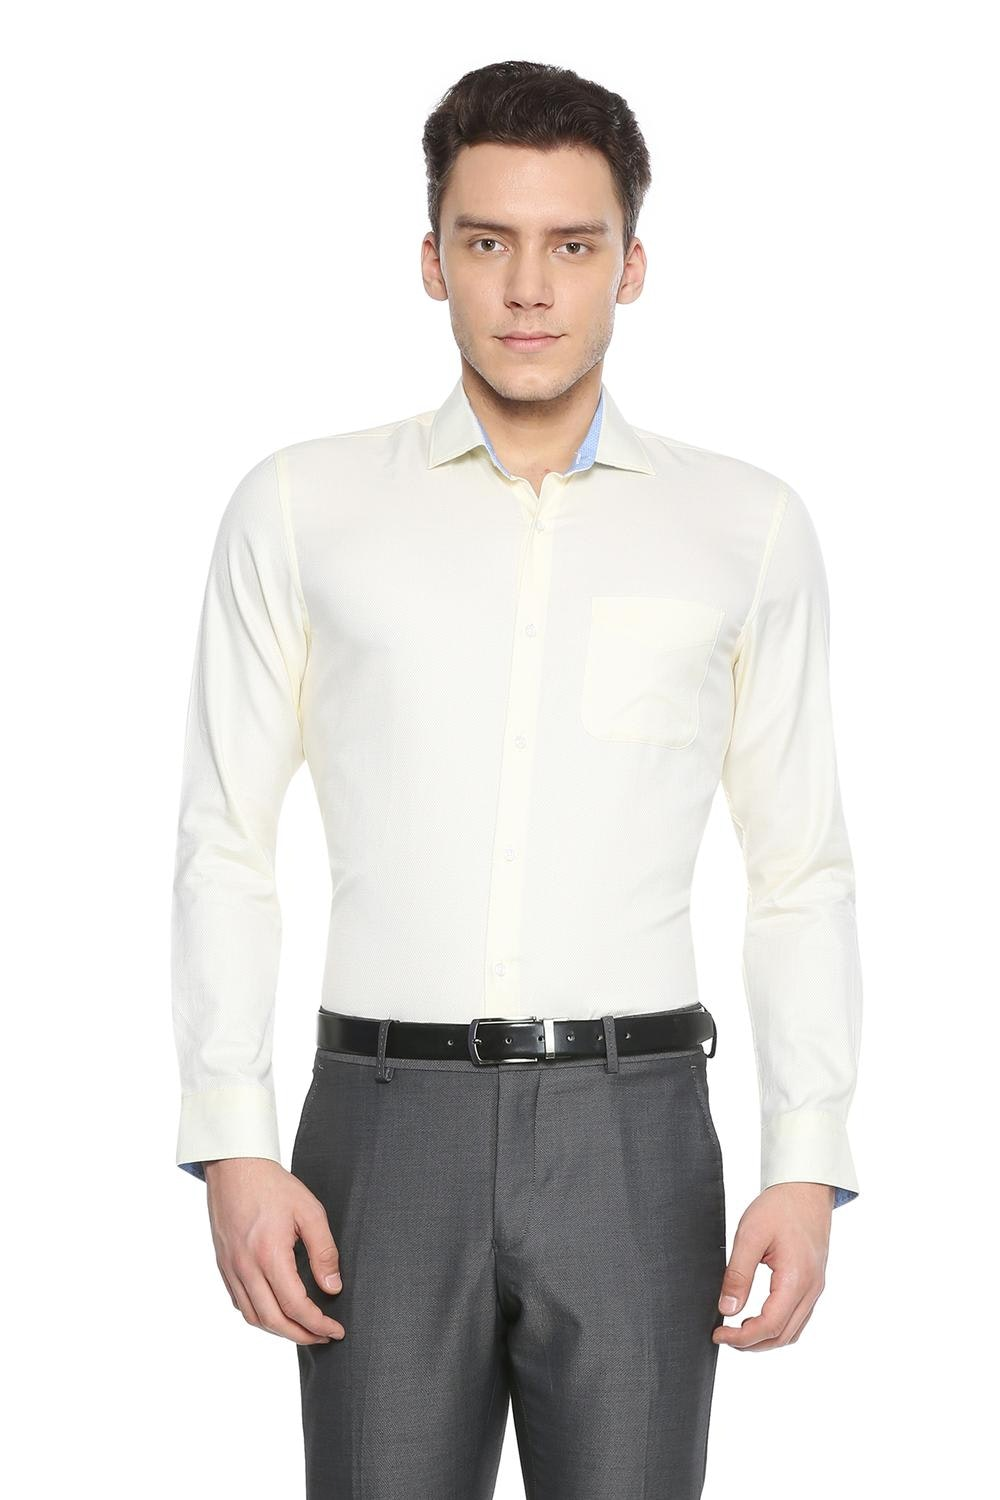 627793de265d Buy Peter England Men s Shirts-Peter England Shirts Online in India ...